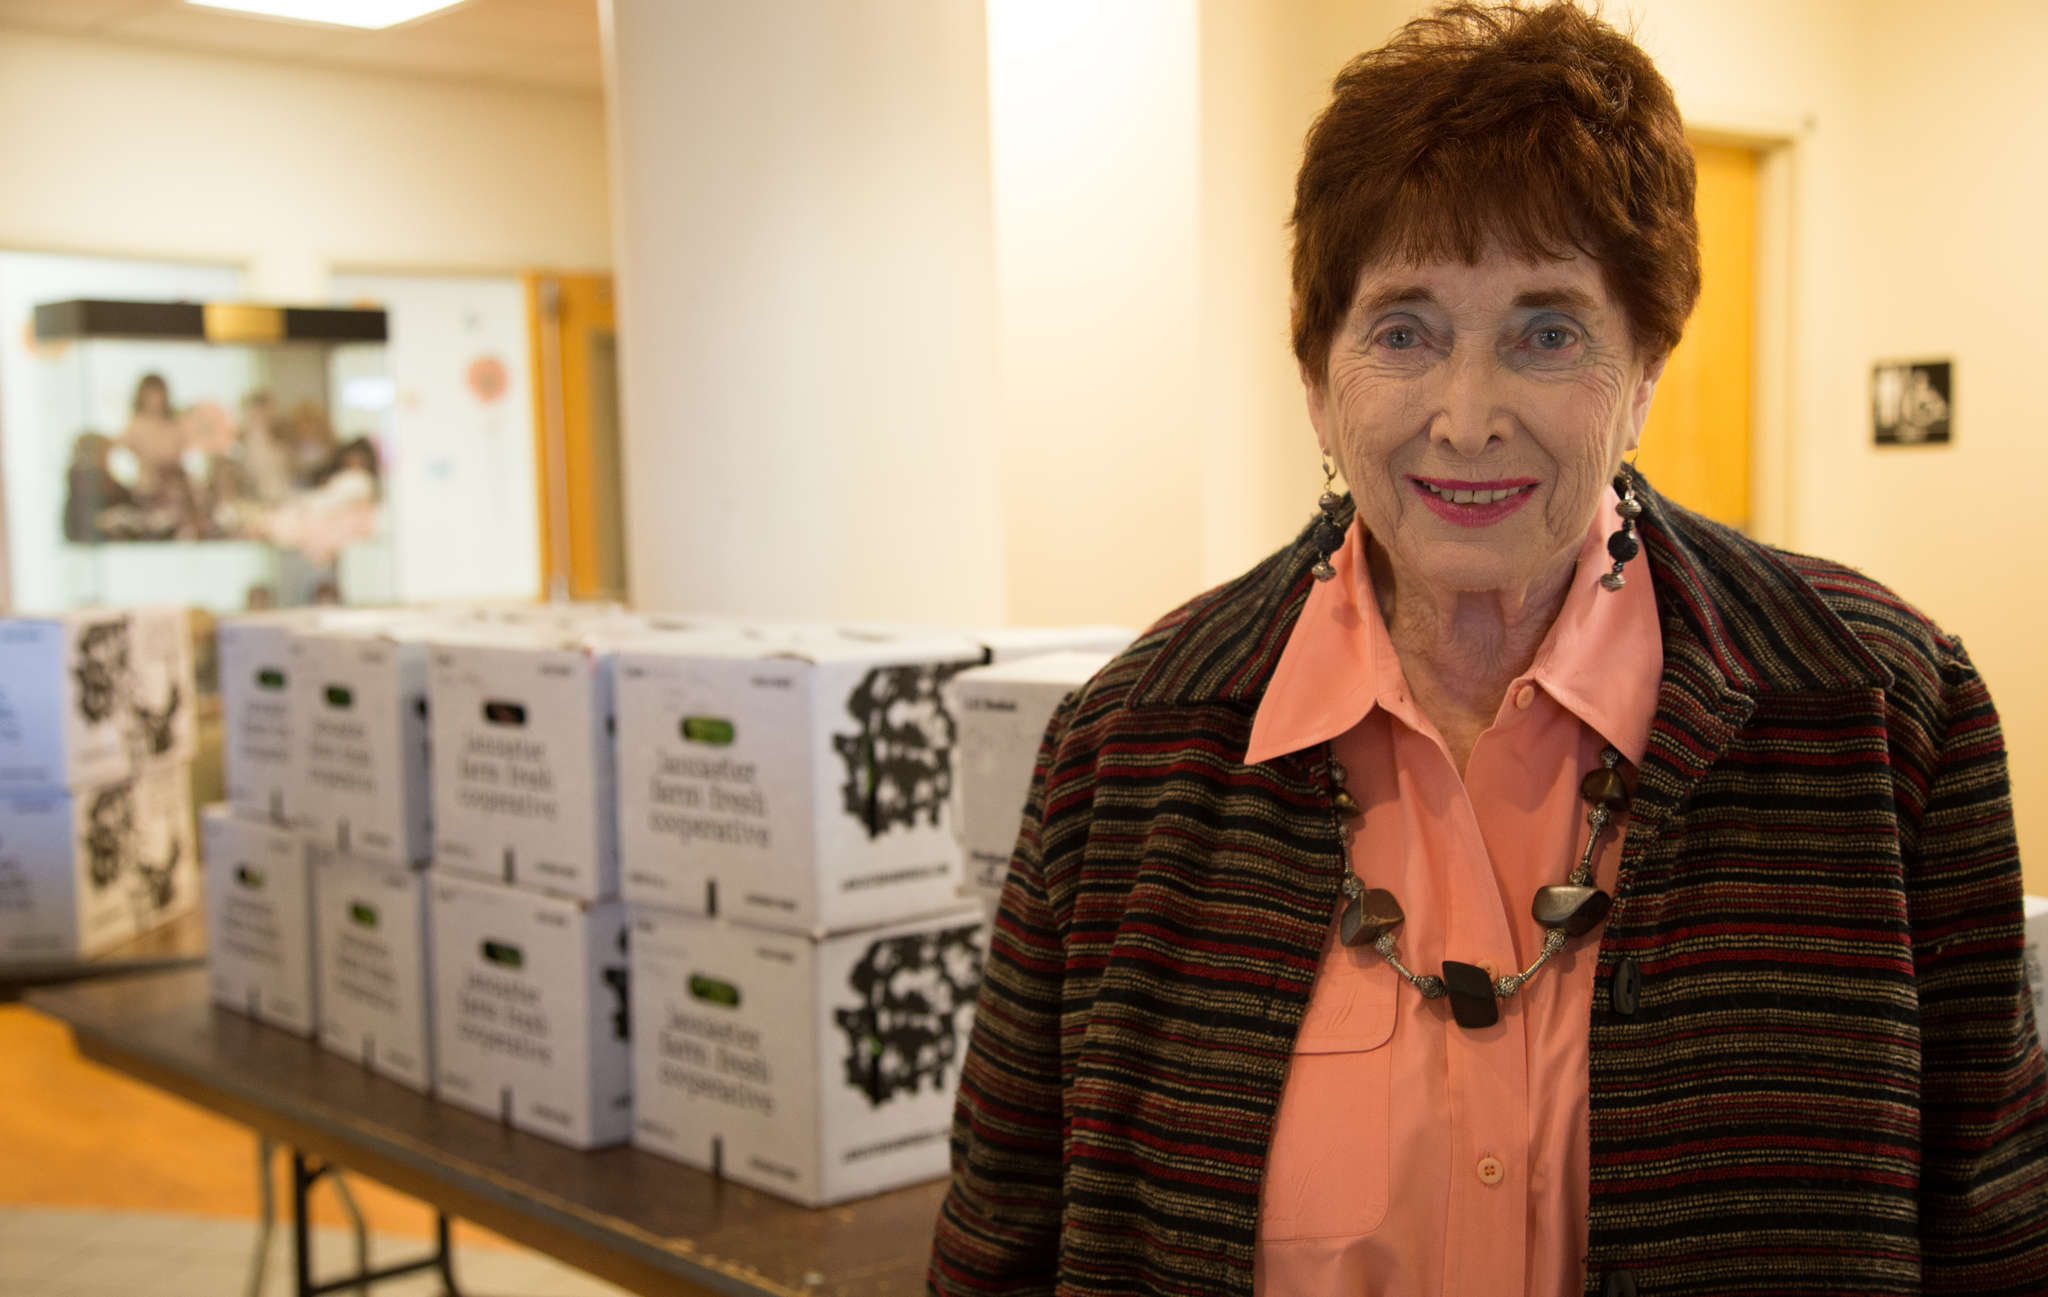 Sharline Heller was retired when she was asked to run Farm to Families.